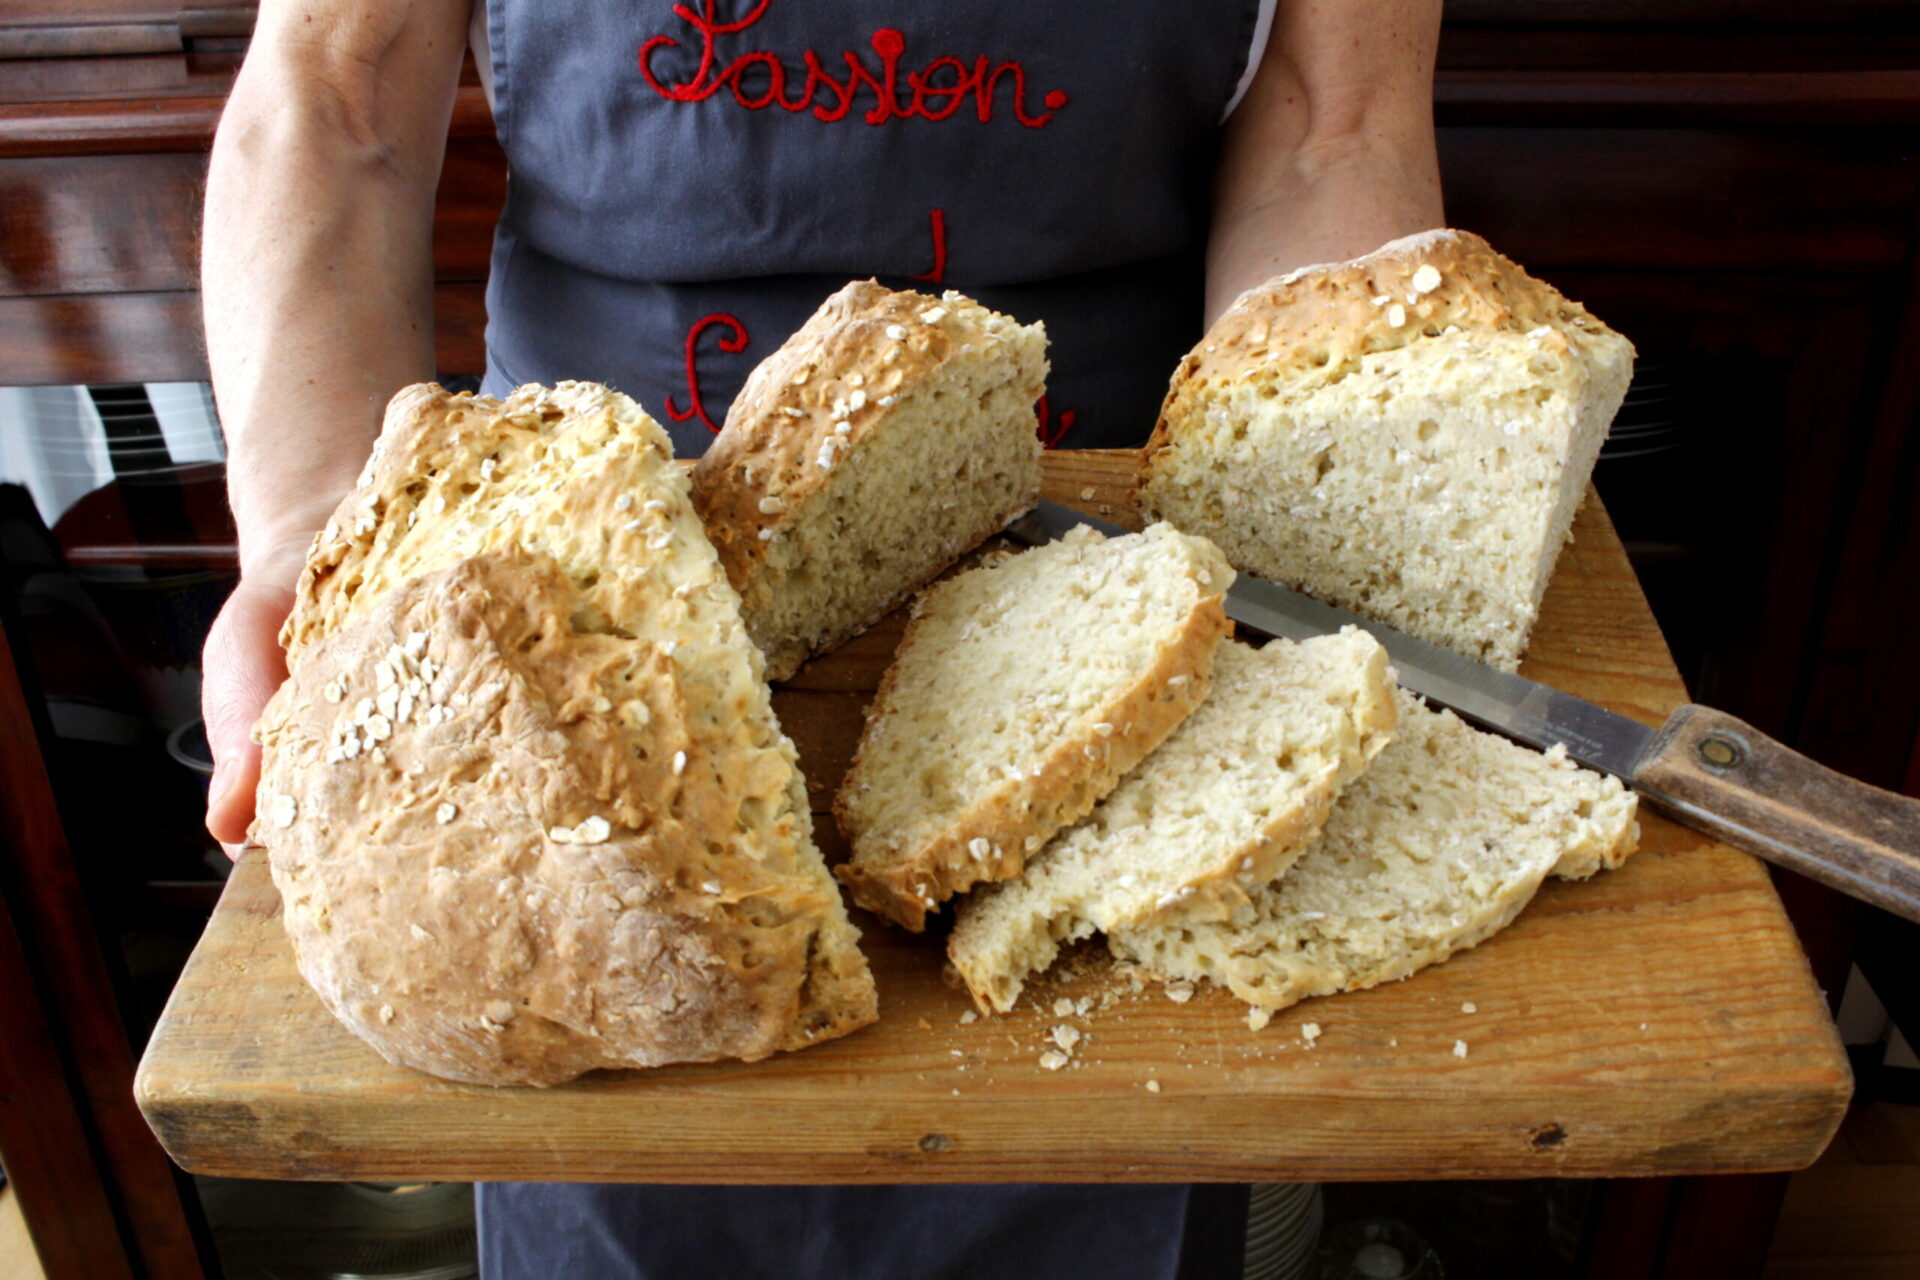 Soda bread with an Italian flavor